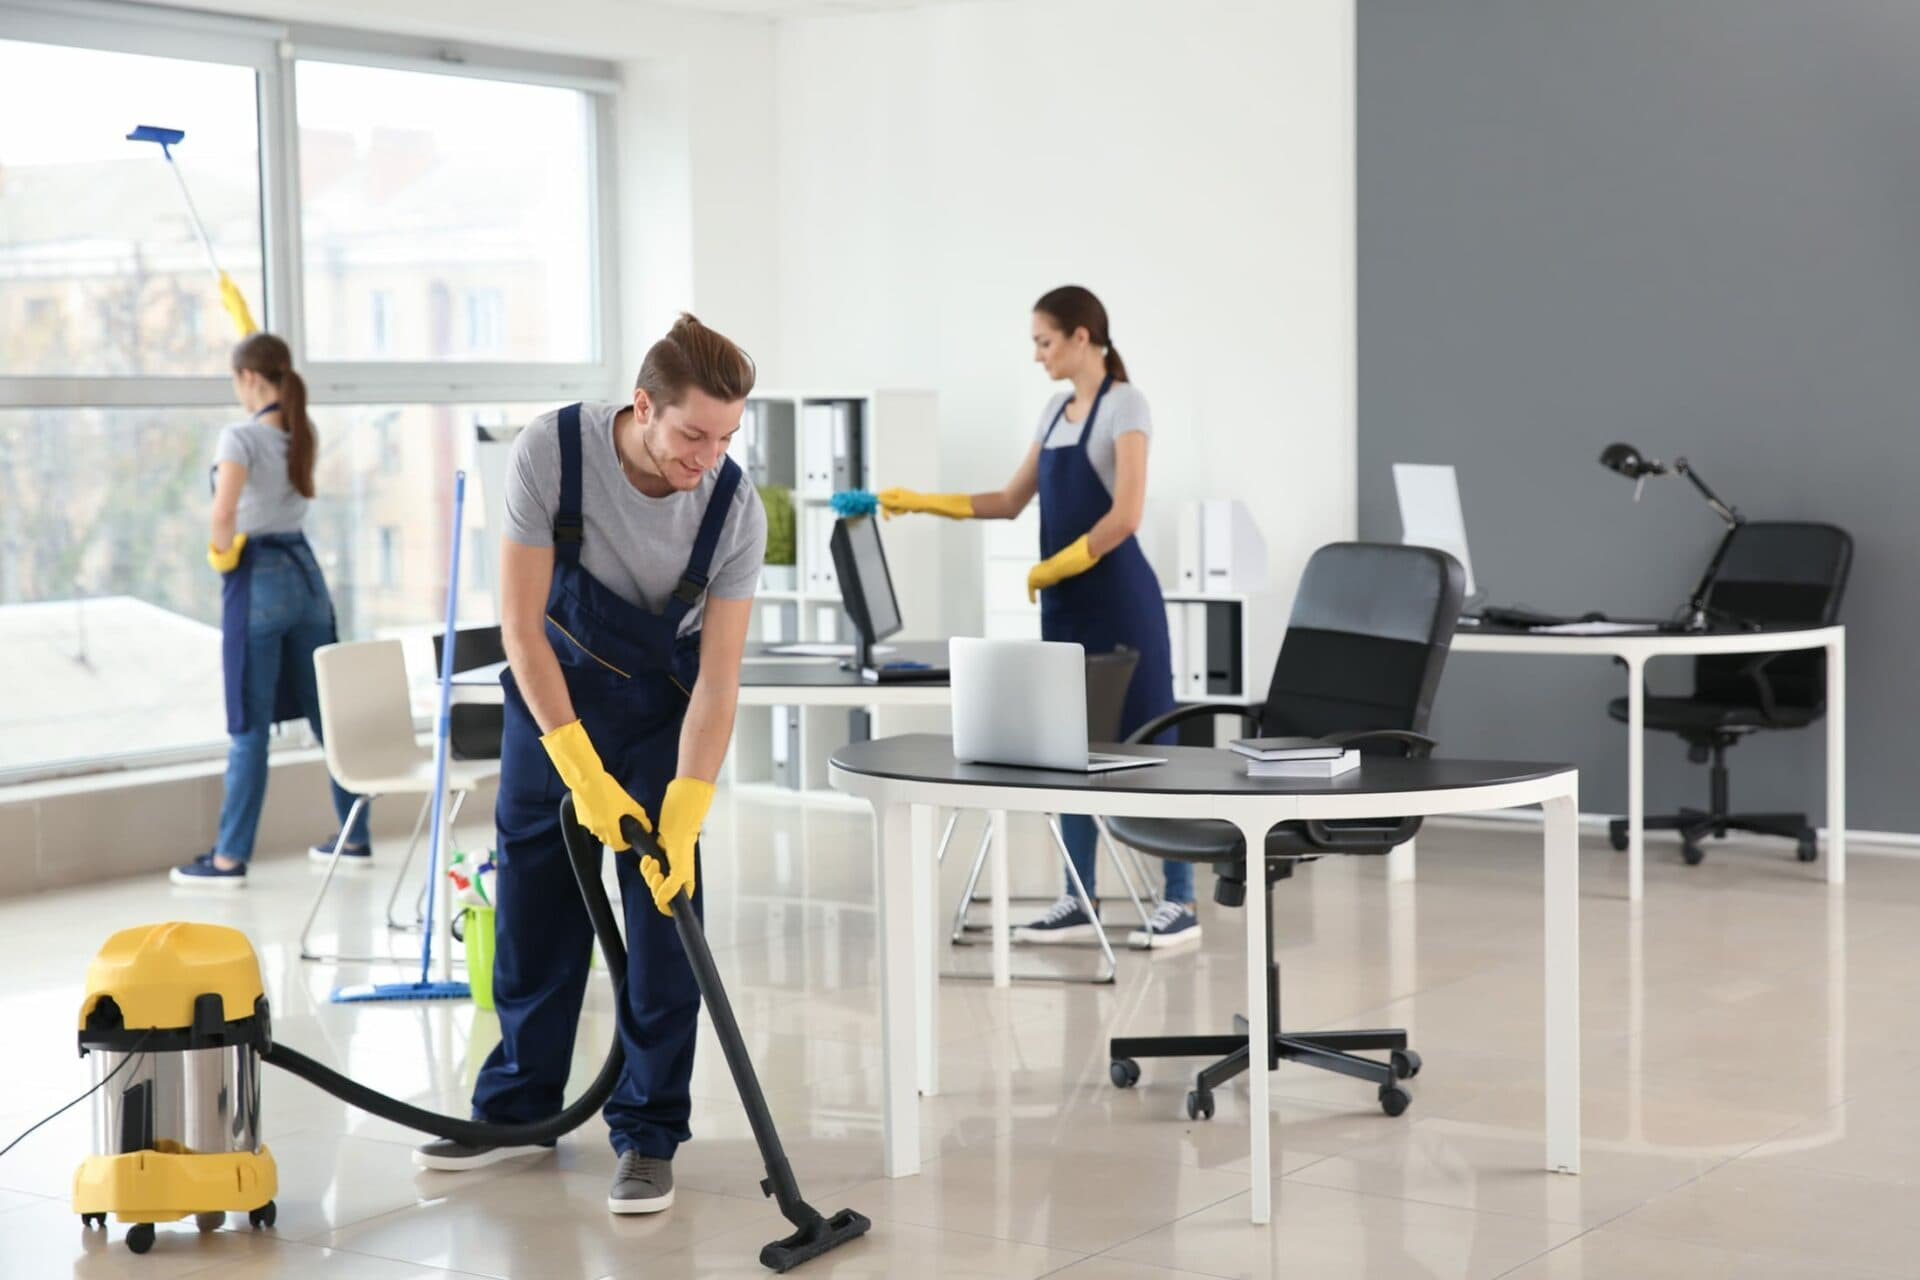 Team of cleaners in commercial office building